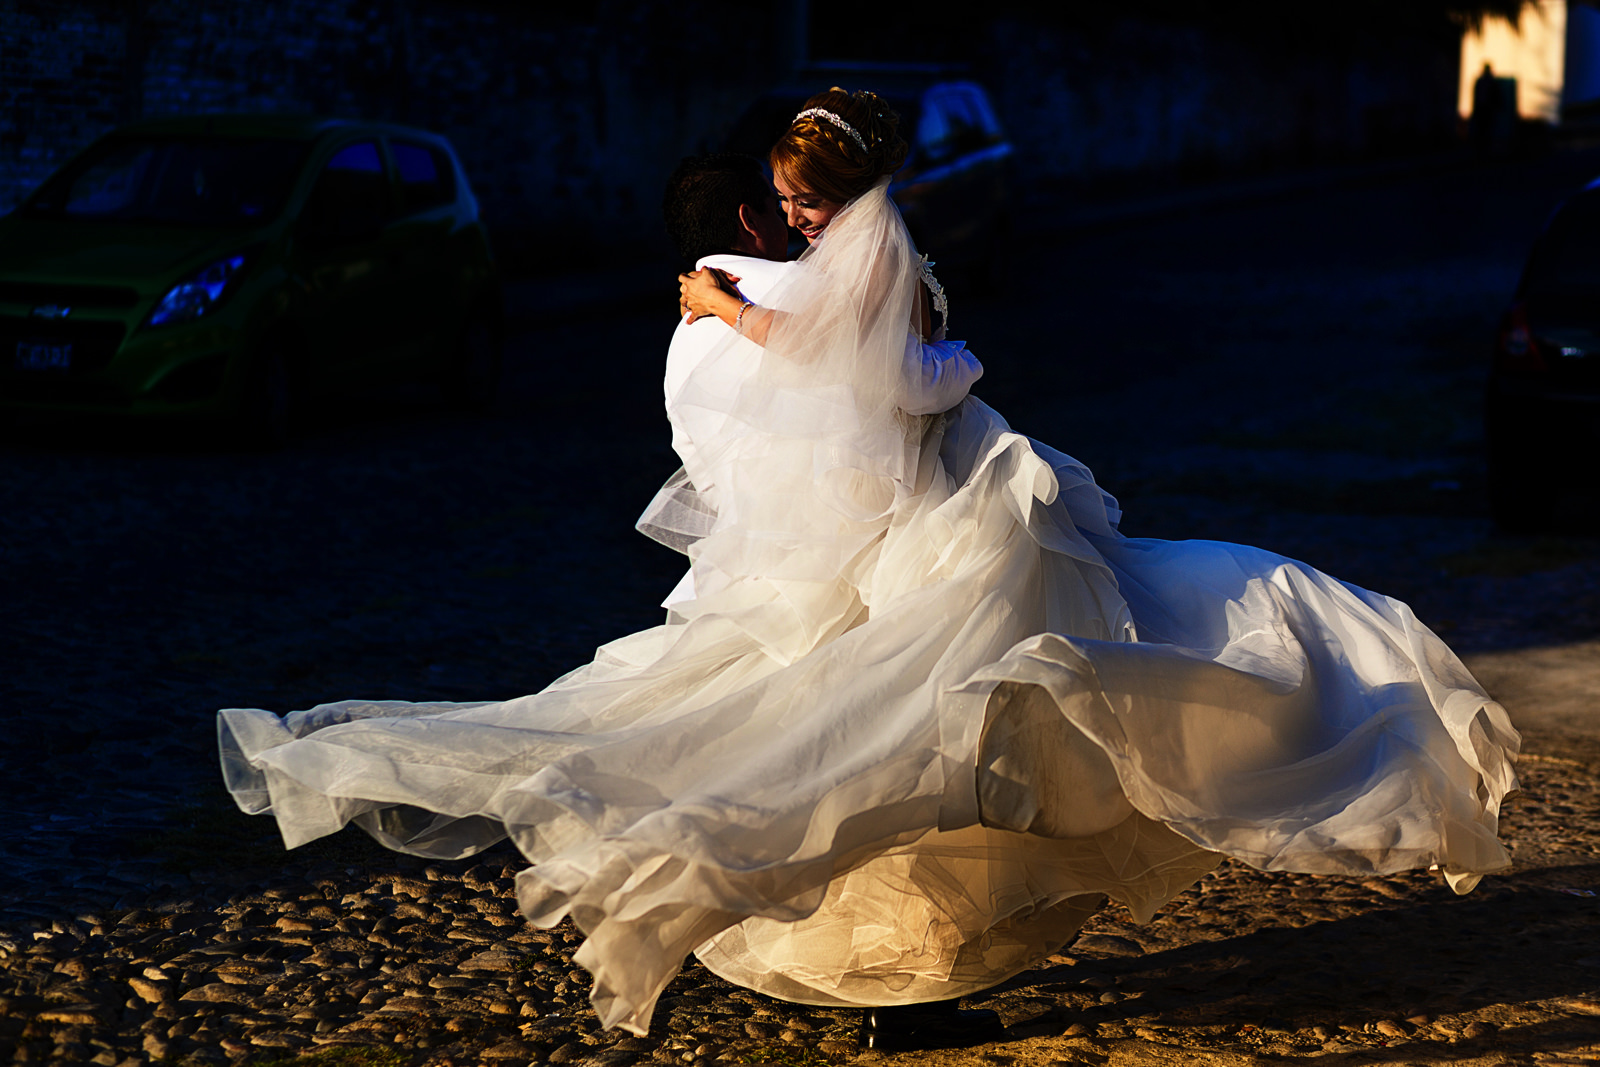 Groom spinning the bride and the dress flowing as they turn on the shinny sun light in the streets of Bucerias